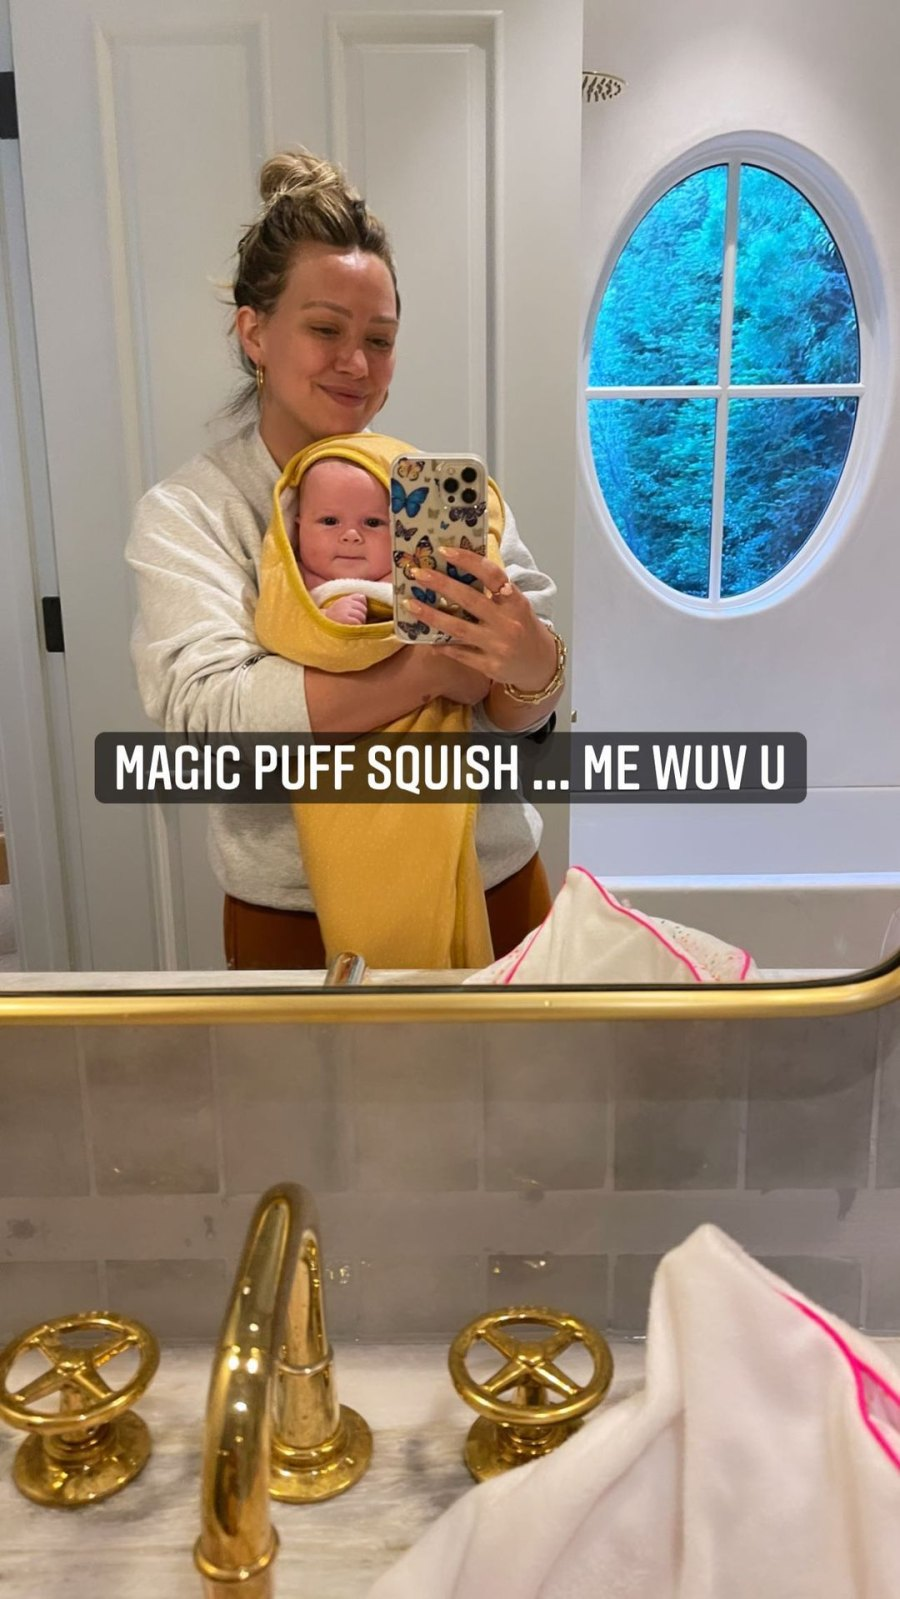 Hilary Duff and Matthew Koma's Youngest Daughter's Baby Album Towel Time